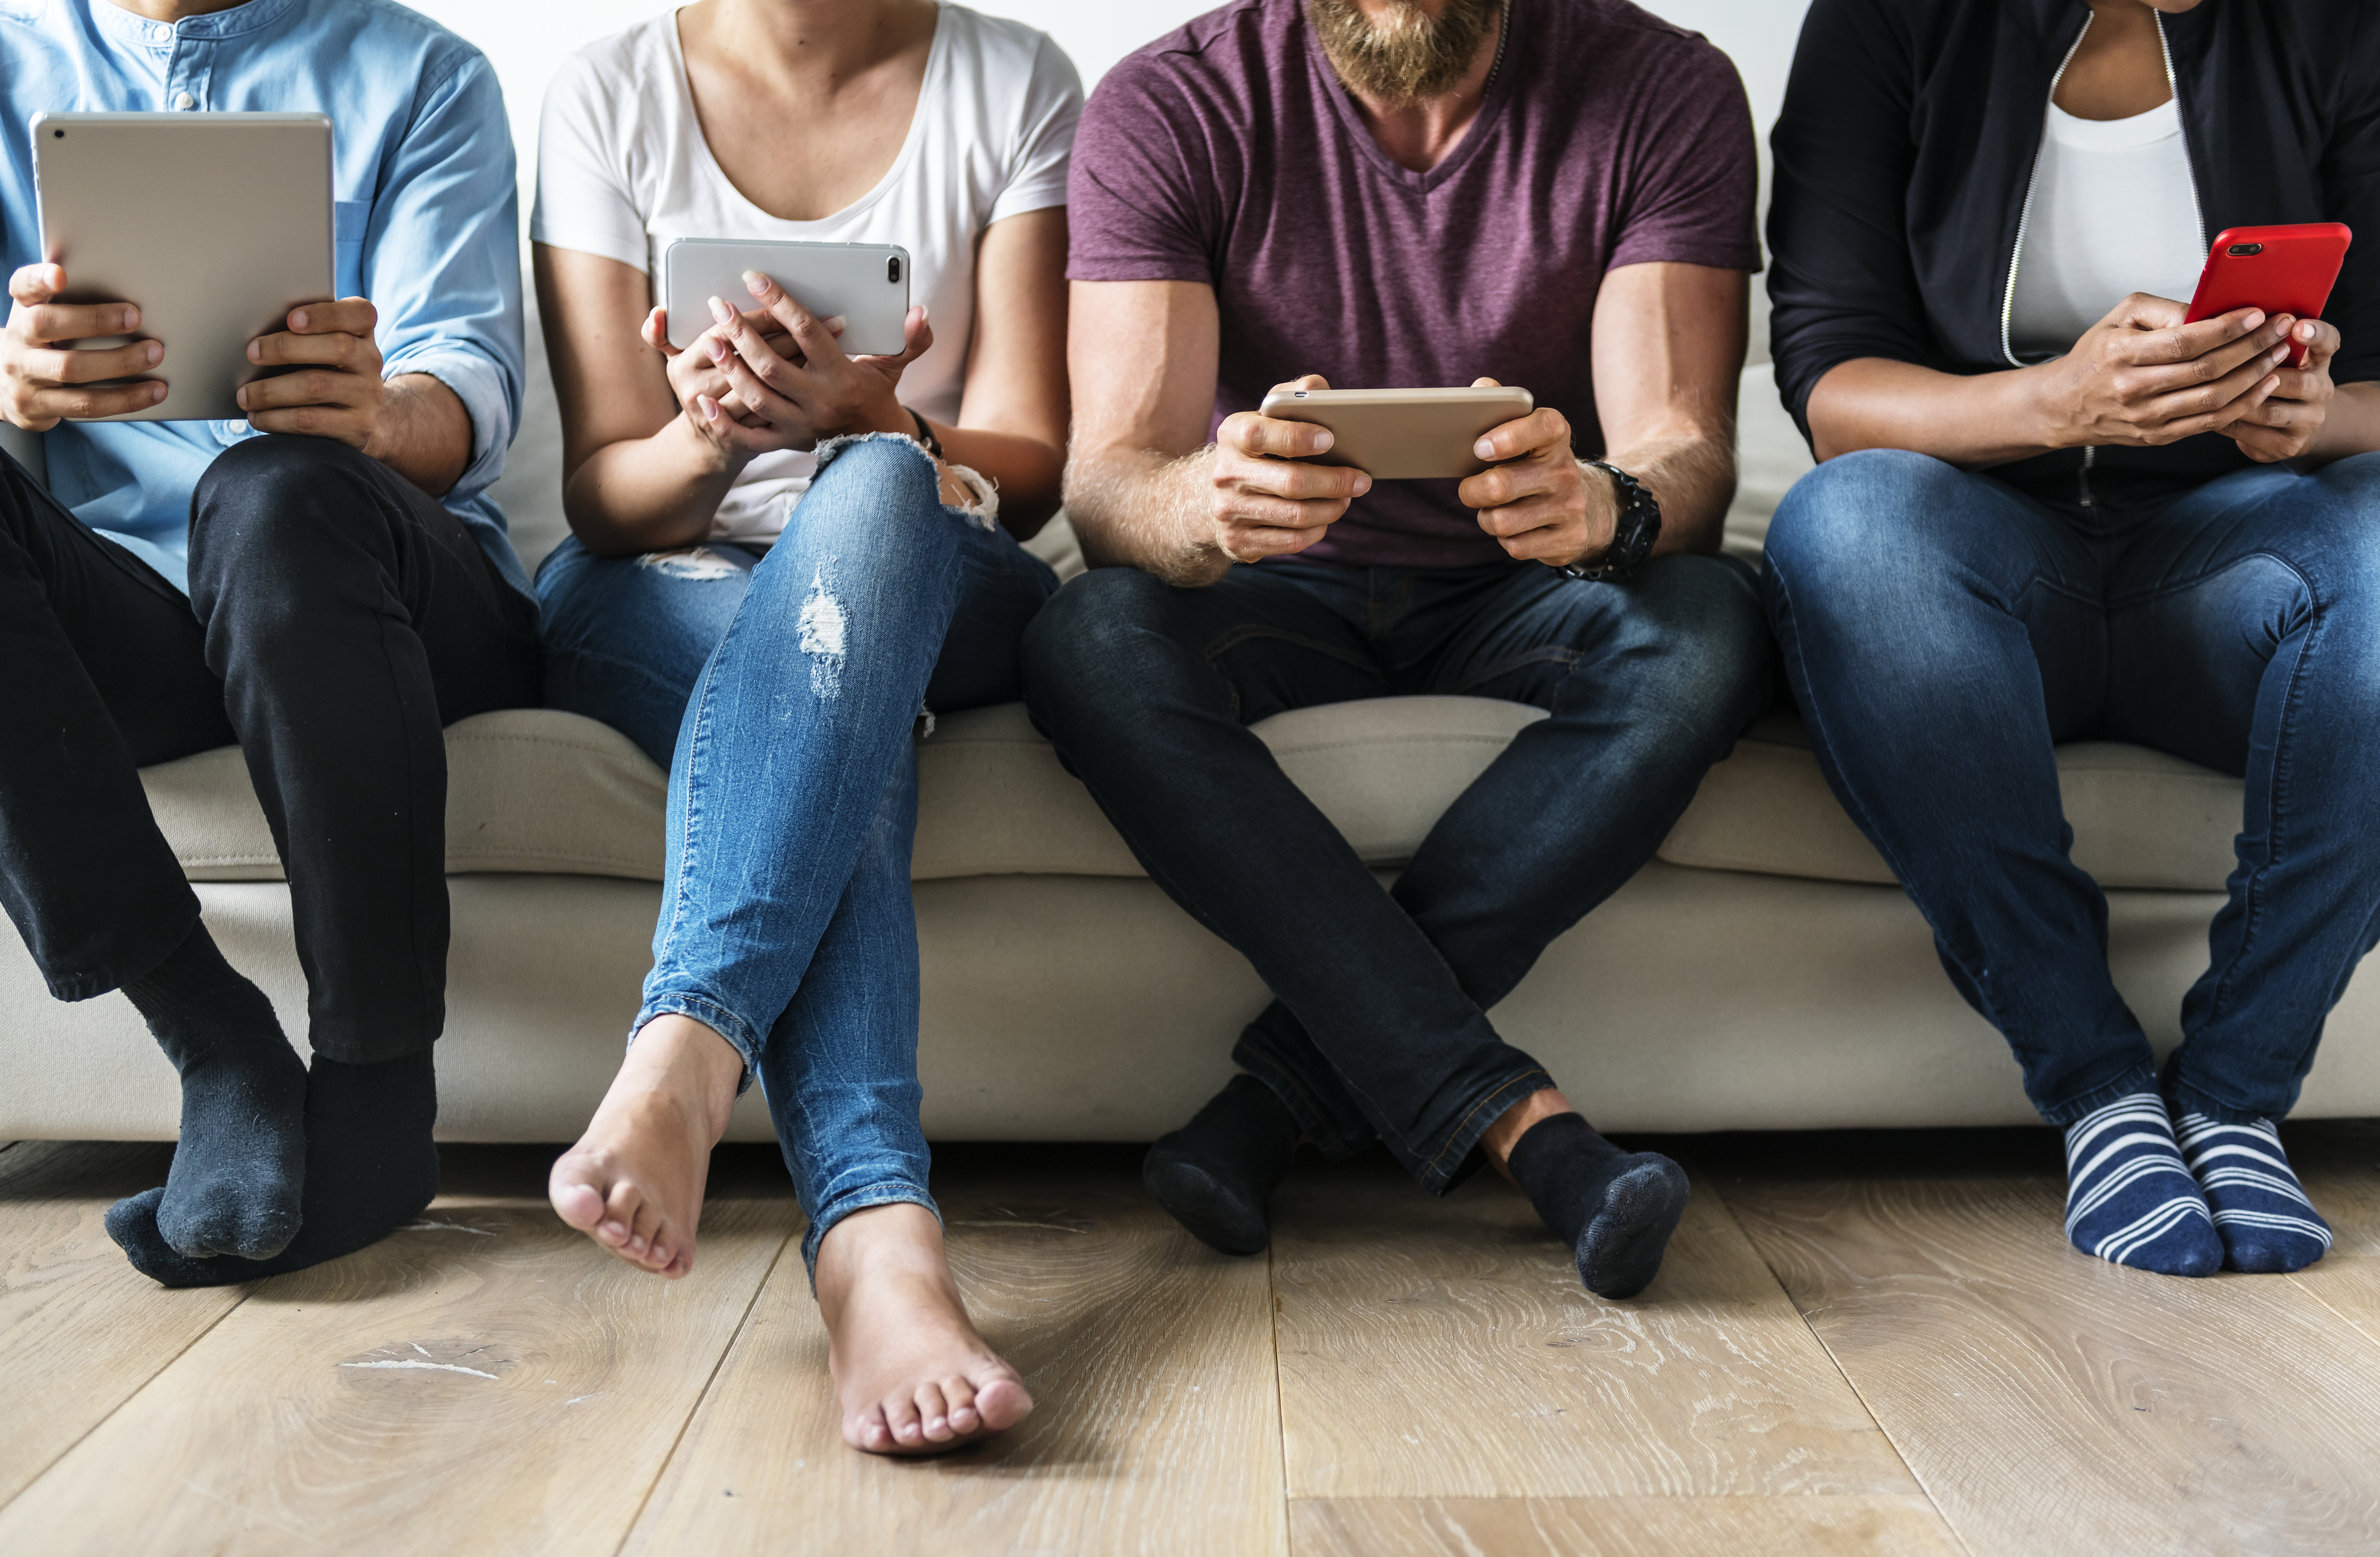 8 Ways to Protect Digital Devices